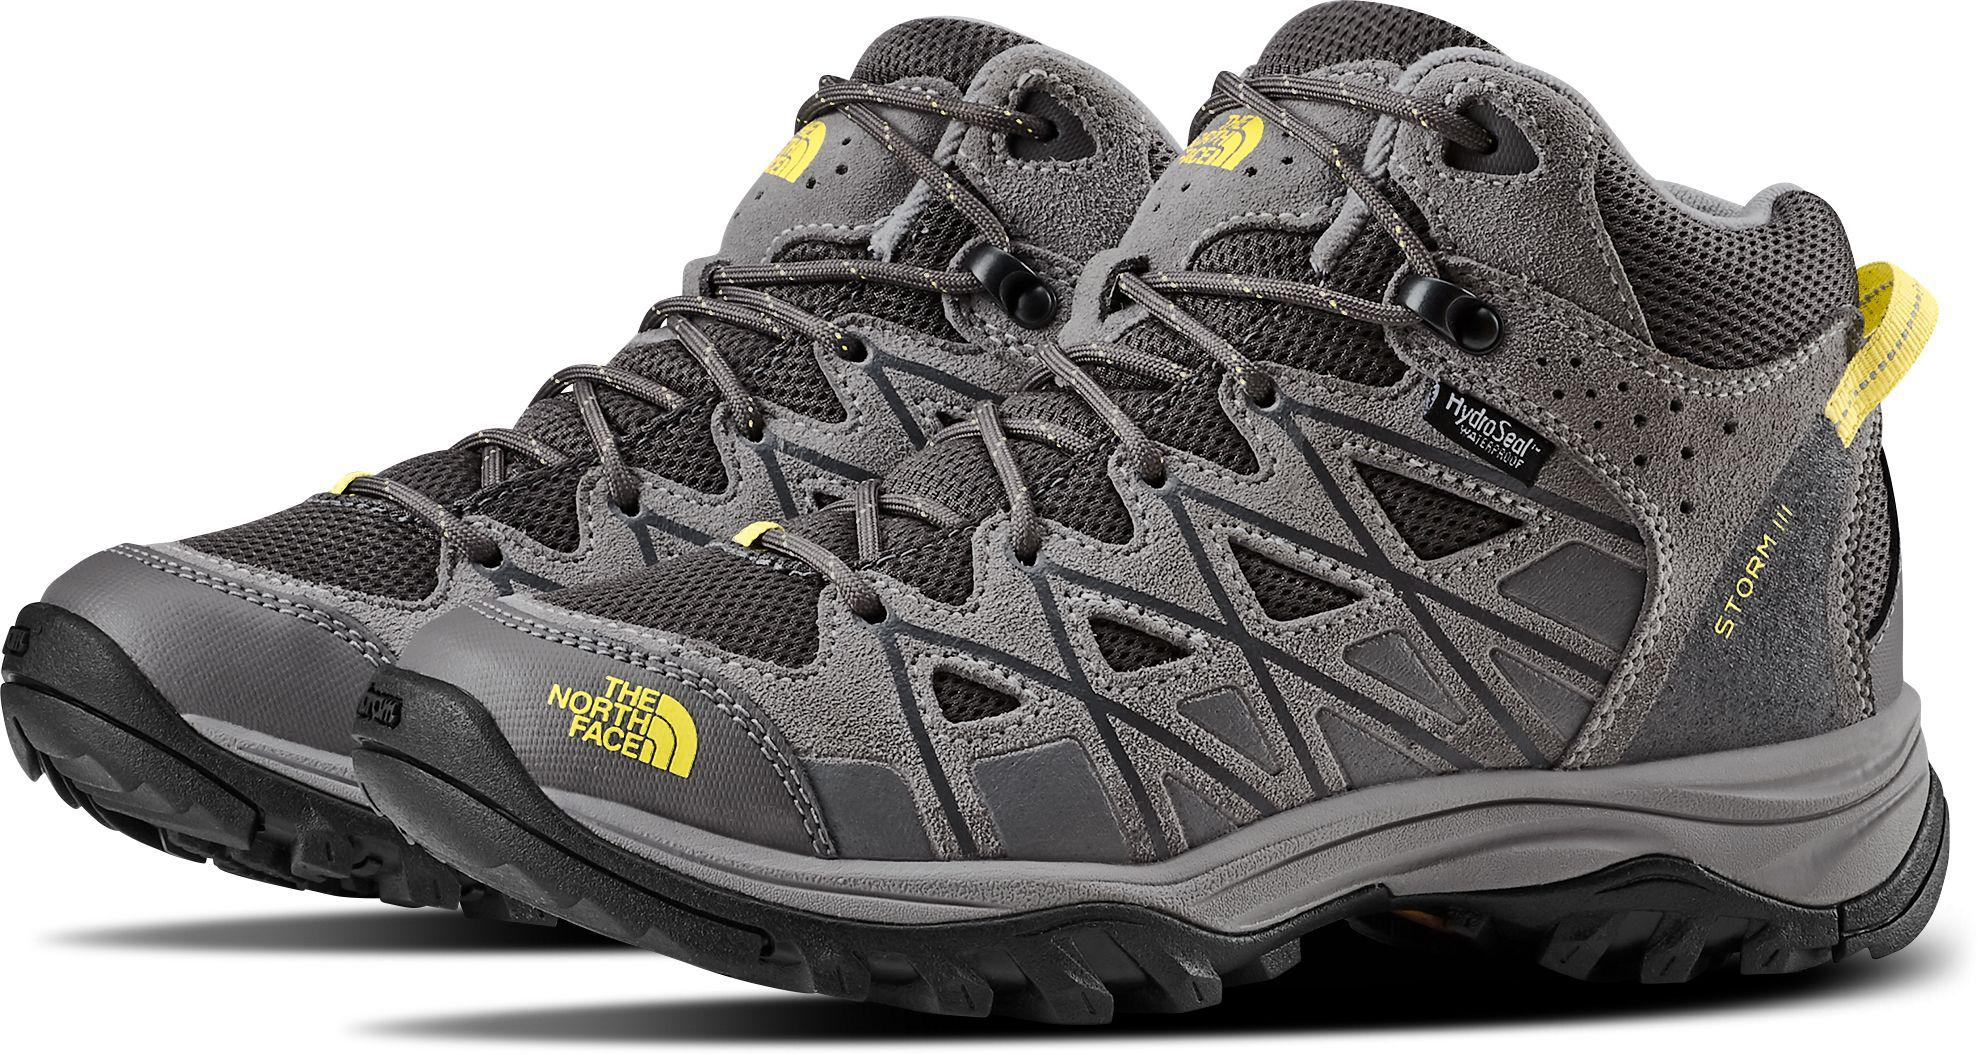 f546f5fcce0 Lyst - The North Face Storm Iii Mid Waterproof Hiking Boots in Gray